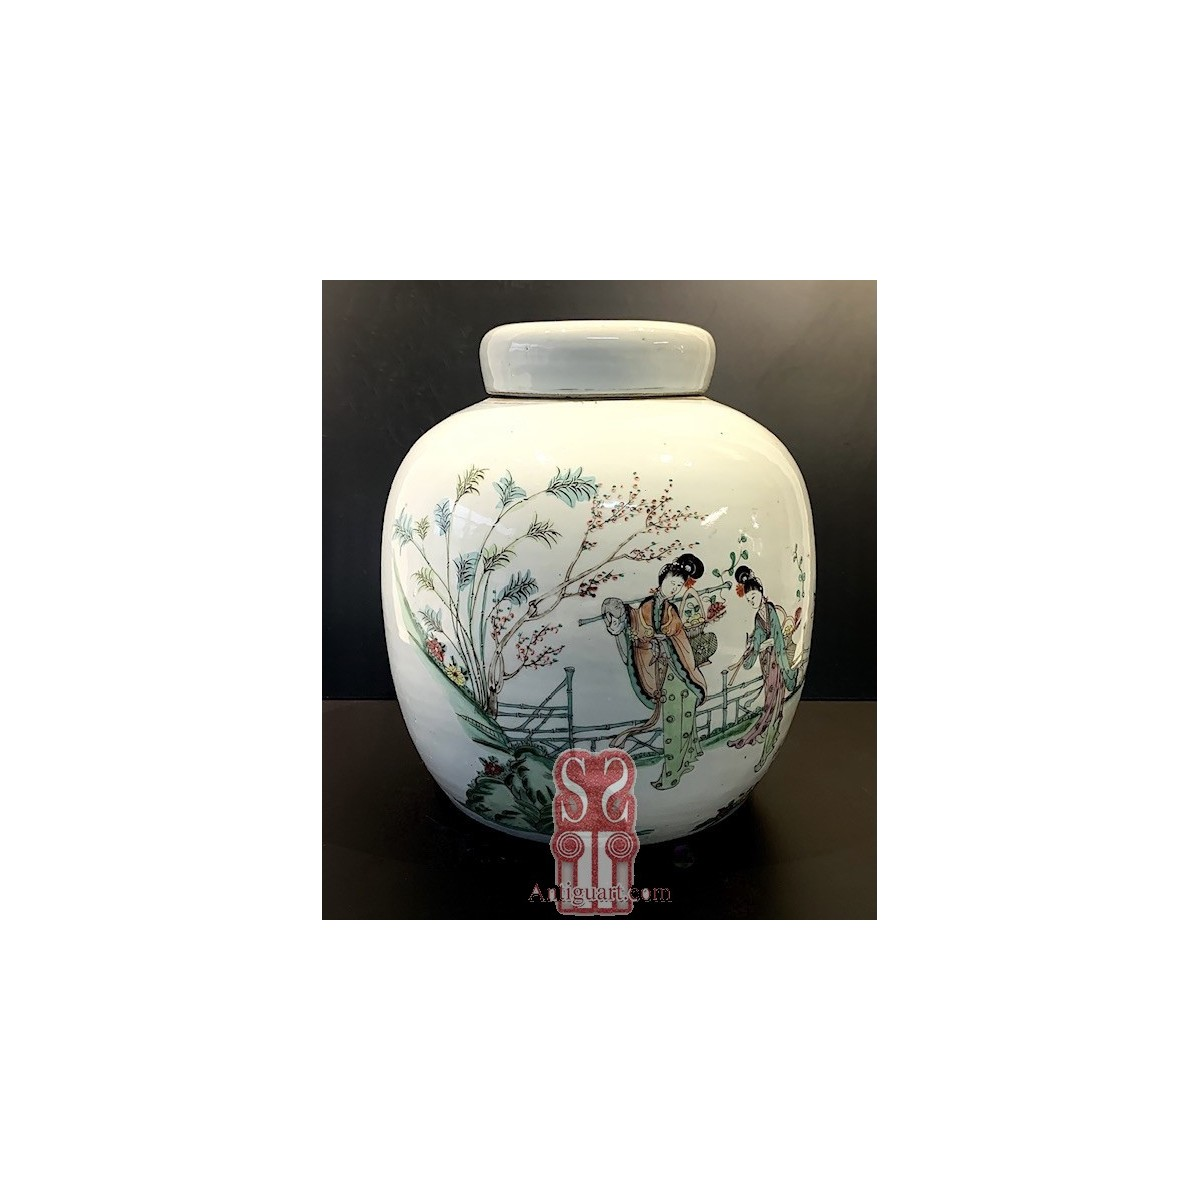 Chinese porcelain vase, 19th, Qing dynasty